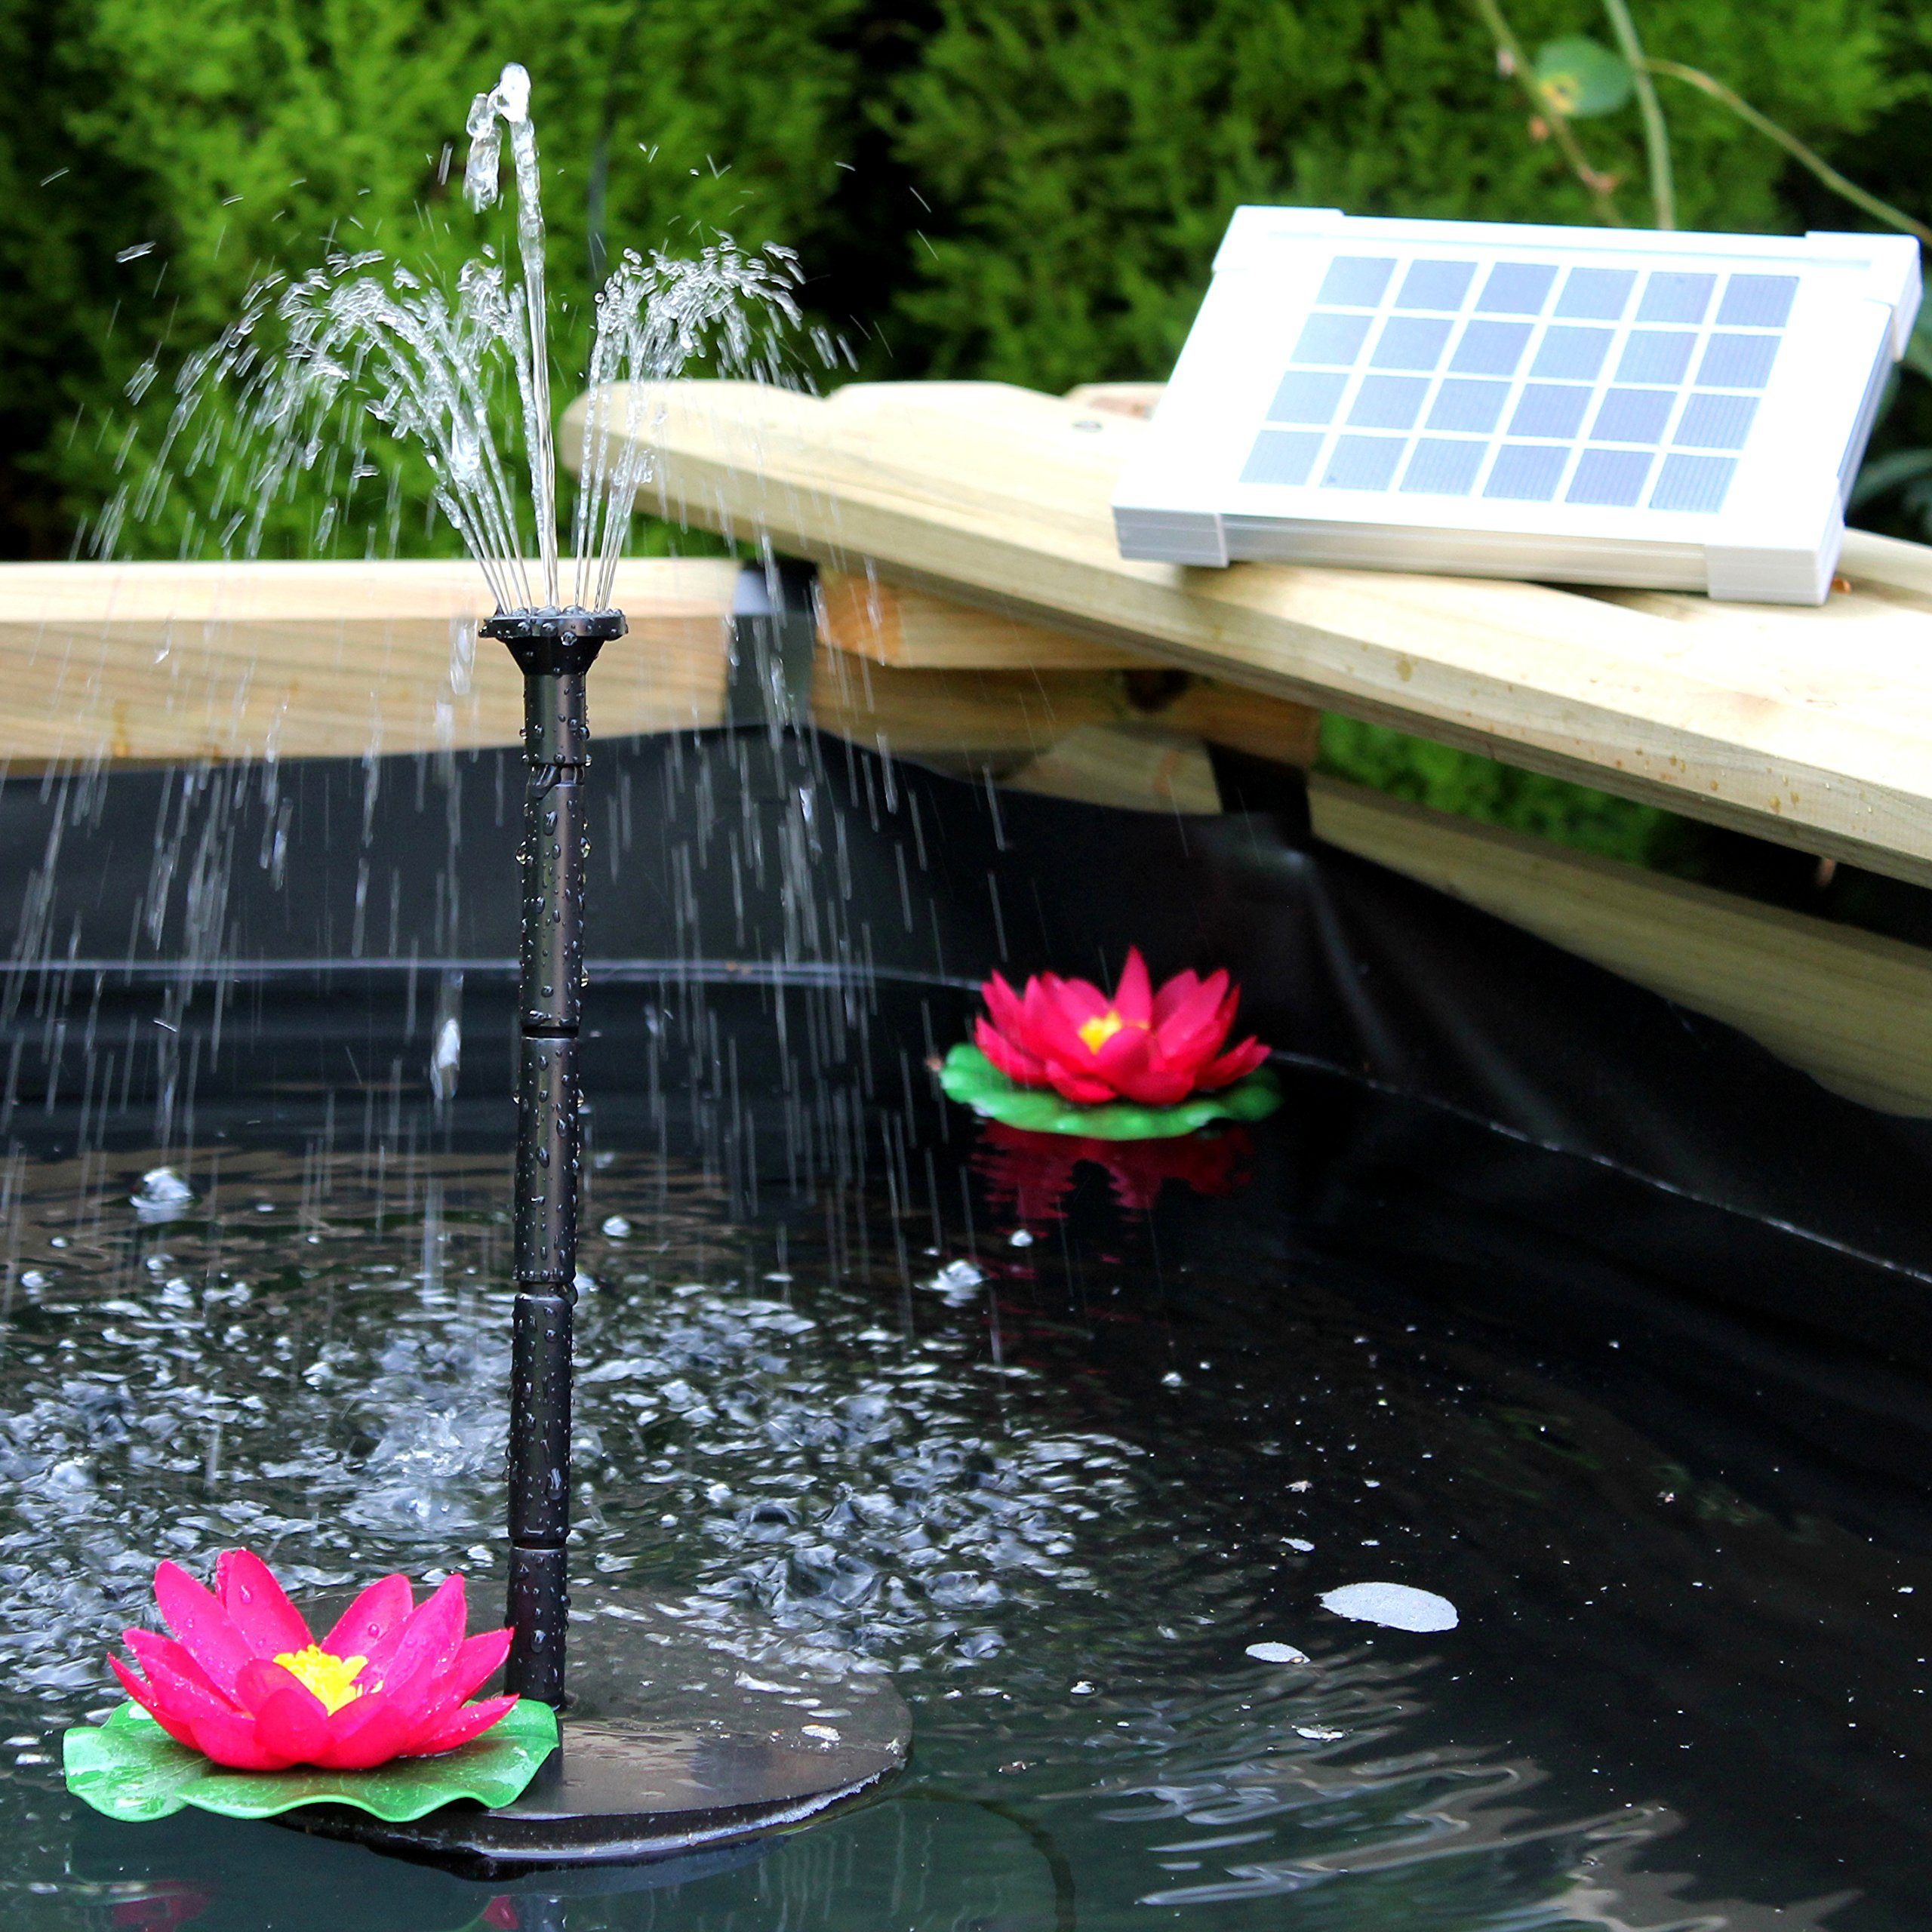 PK Green Solar Fountain Pump 2W - Floating Water Pump for Small Pond, Garden, Water Feature, Bird Bath 70 cm Height